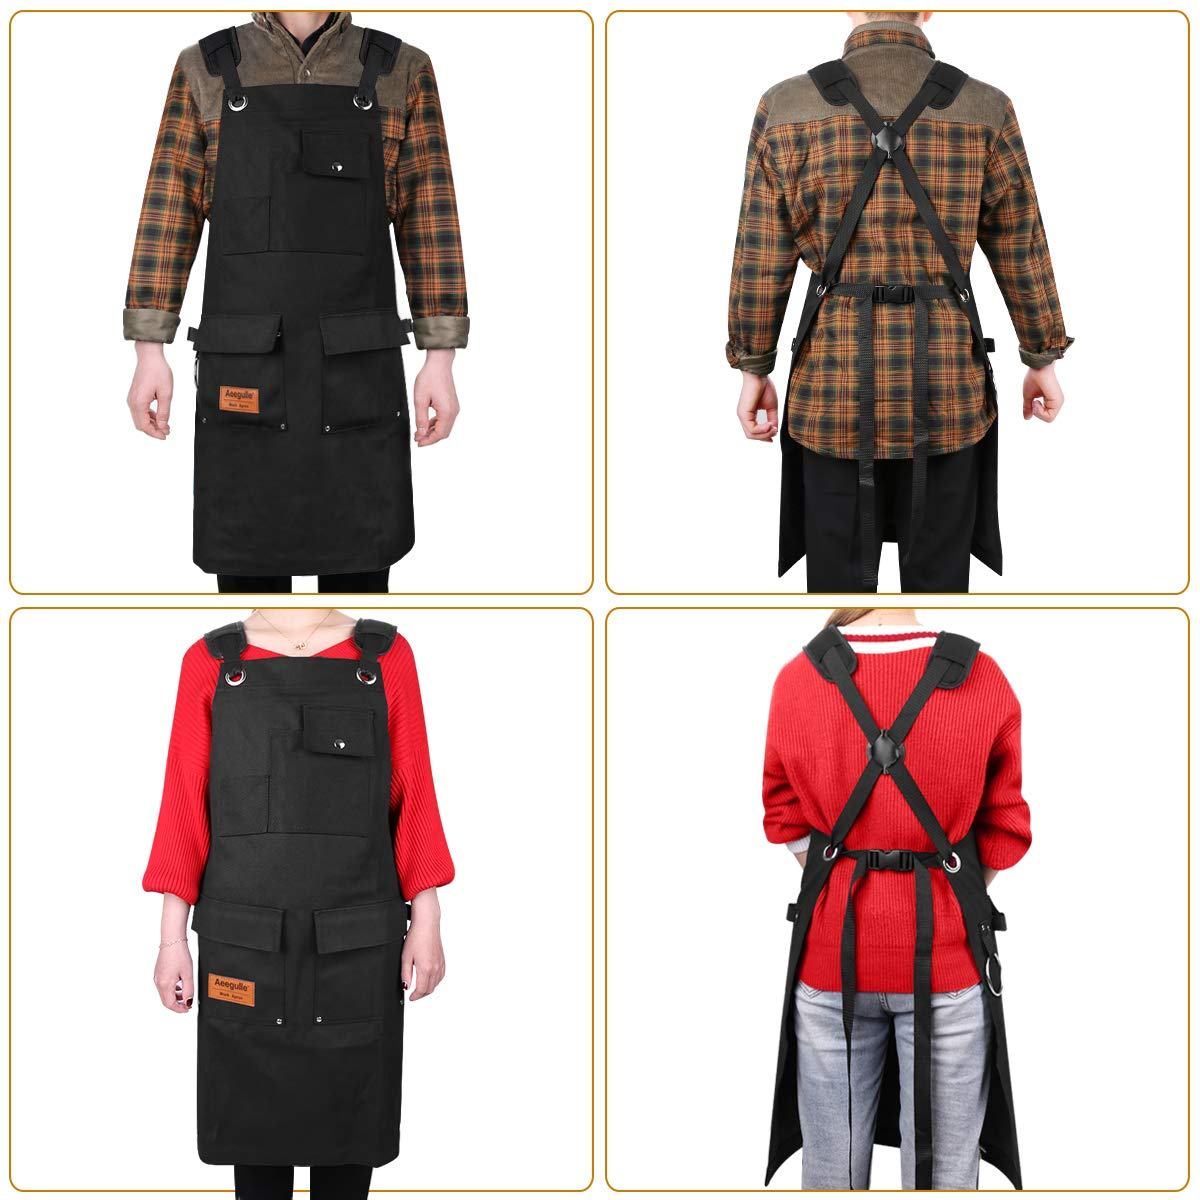 Aeegulle Work Apron, Heavy Duty Waxed Canvas Tool Apron (With work gloves), 6 Pockets, Thick shoulder pad, Quick Release Buckle, Cross-Back Straps Adjustable M to XXL, Apron for Men & Women(black) by Aeegulle (Image #2)